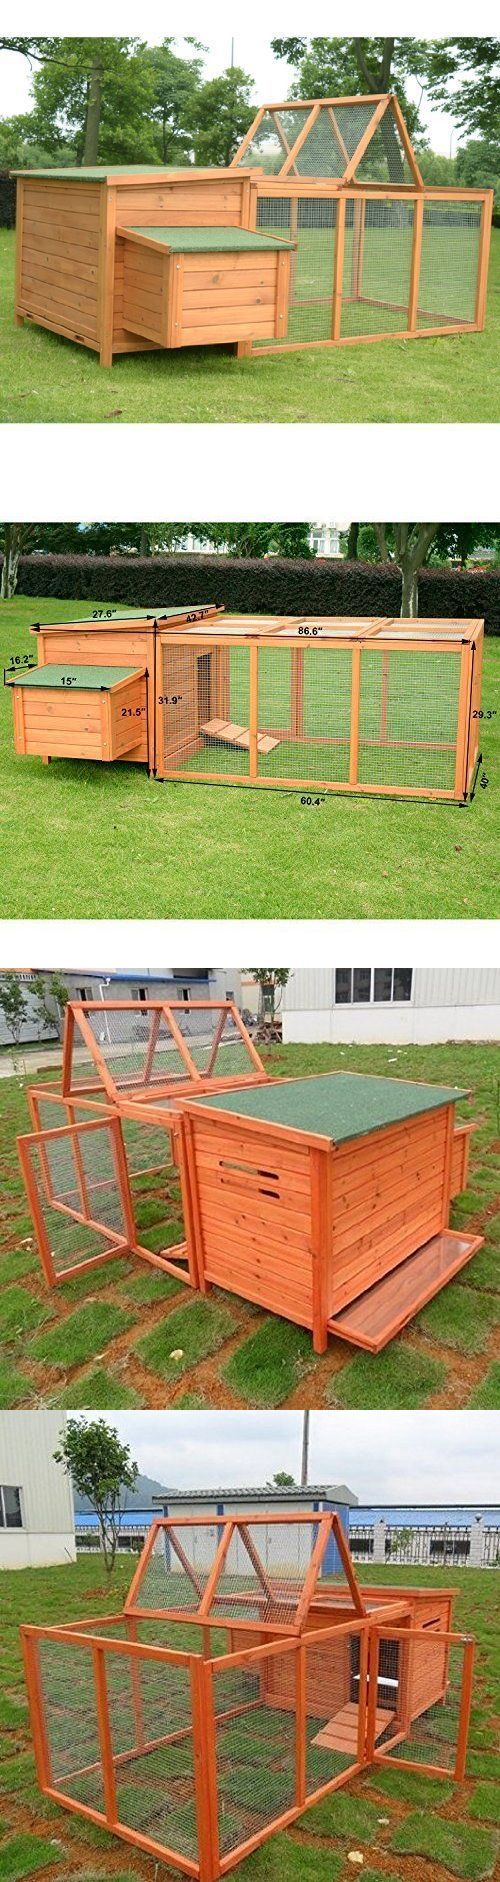 Backyard Poultry Supplies 177801: Chicken Coop Rabbit Hutch Cage Hen House Backyard Pen Poultry Outdoor Enclosure BUY IT NOW ONLY: $355.47